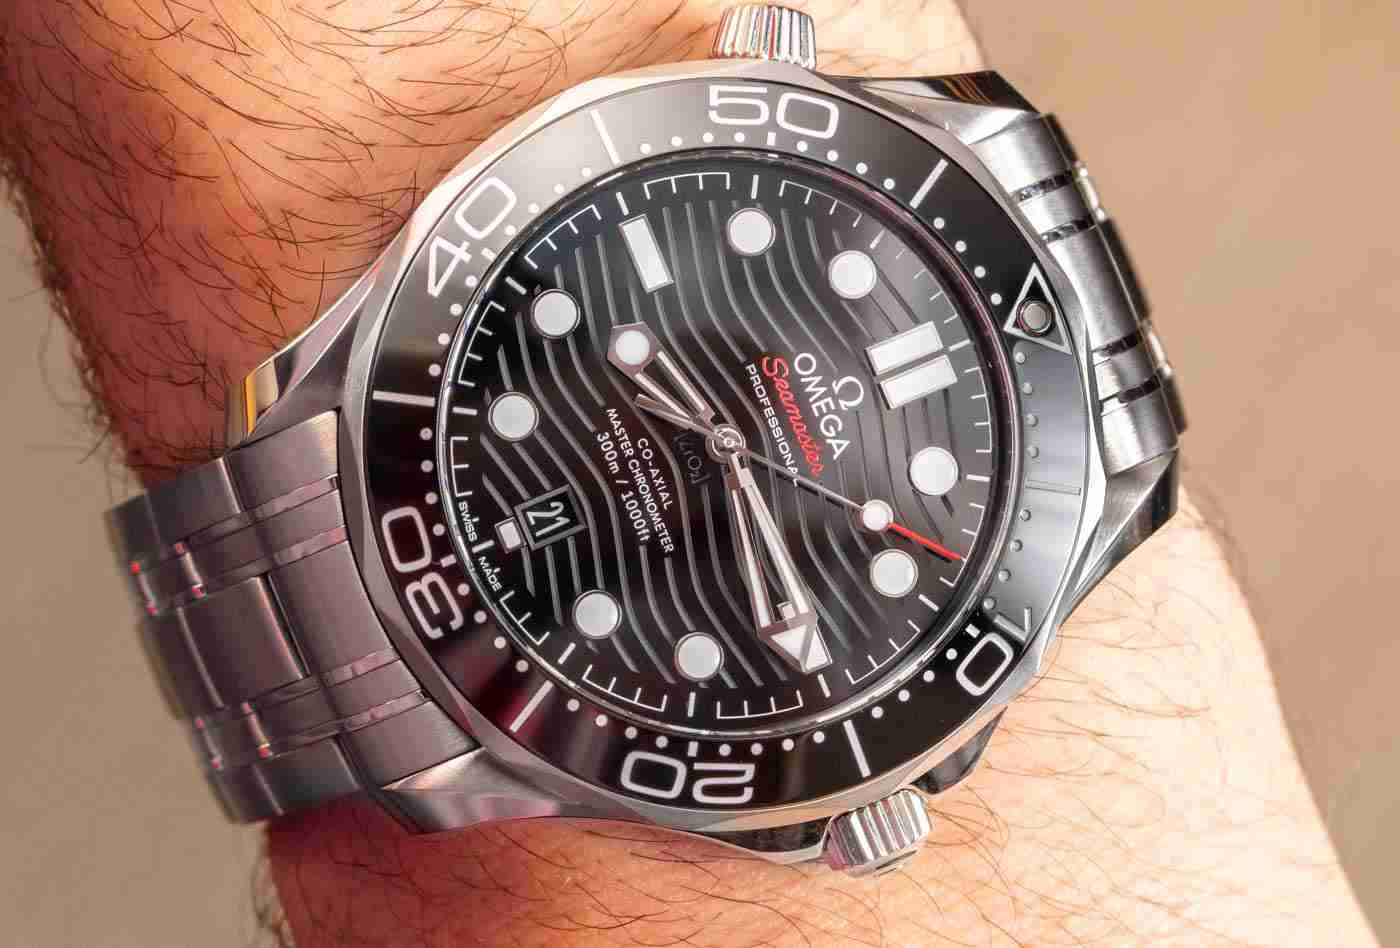 In Depth The Omega Seamaster 300M Co-Axial Master Chronometer Replica Buying Guide